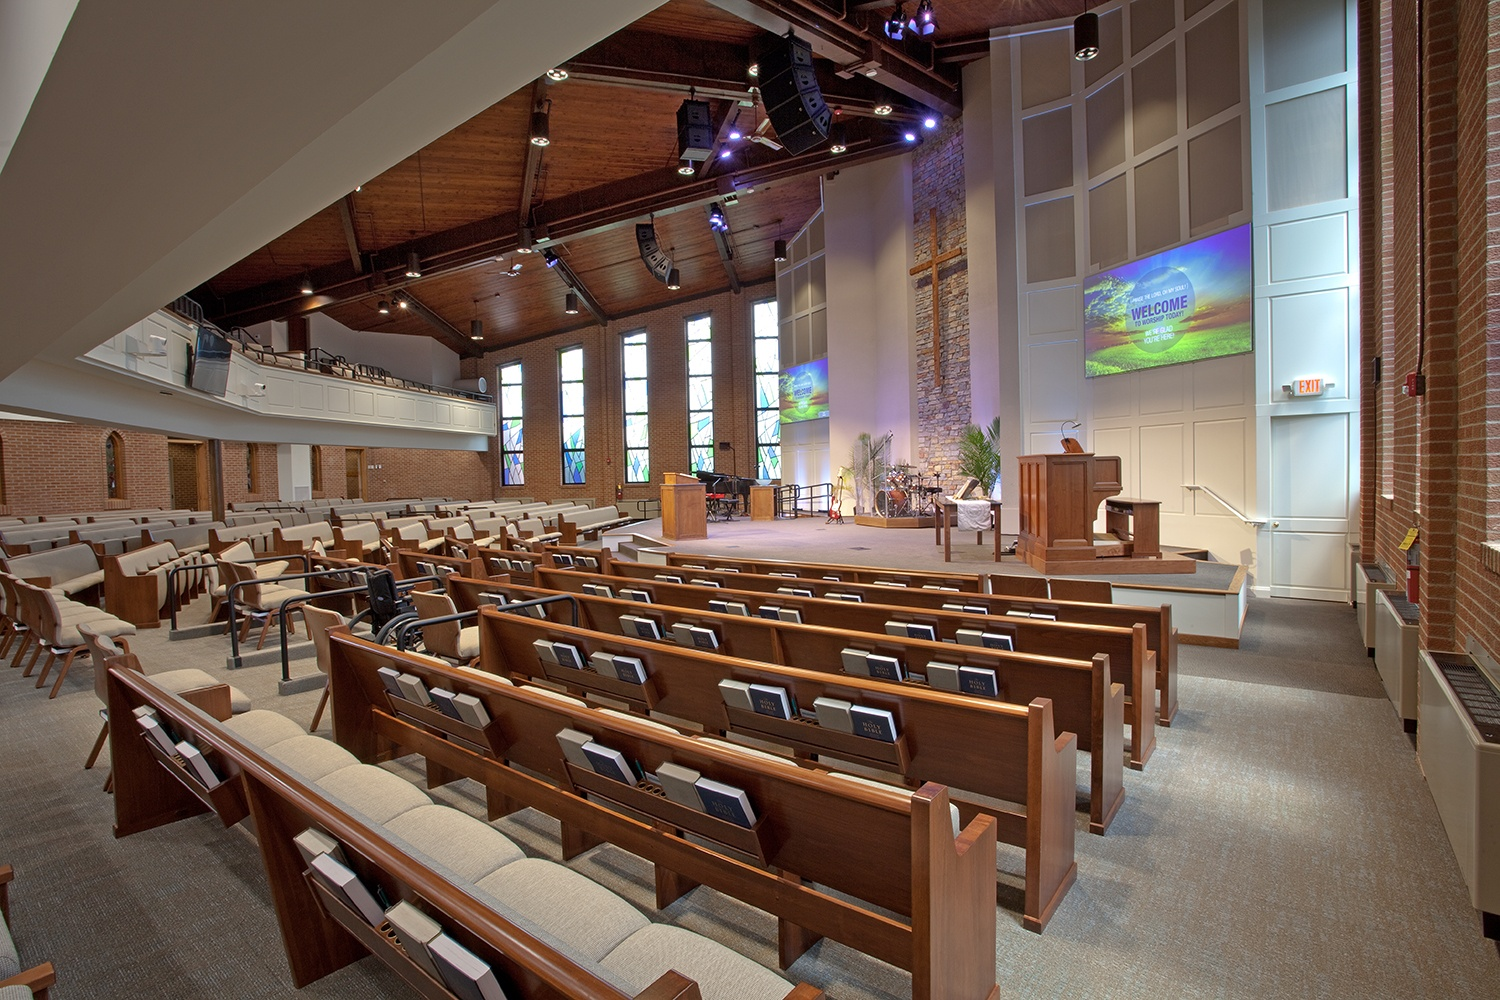 orland-park-sanctuary-2-web